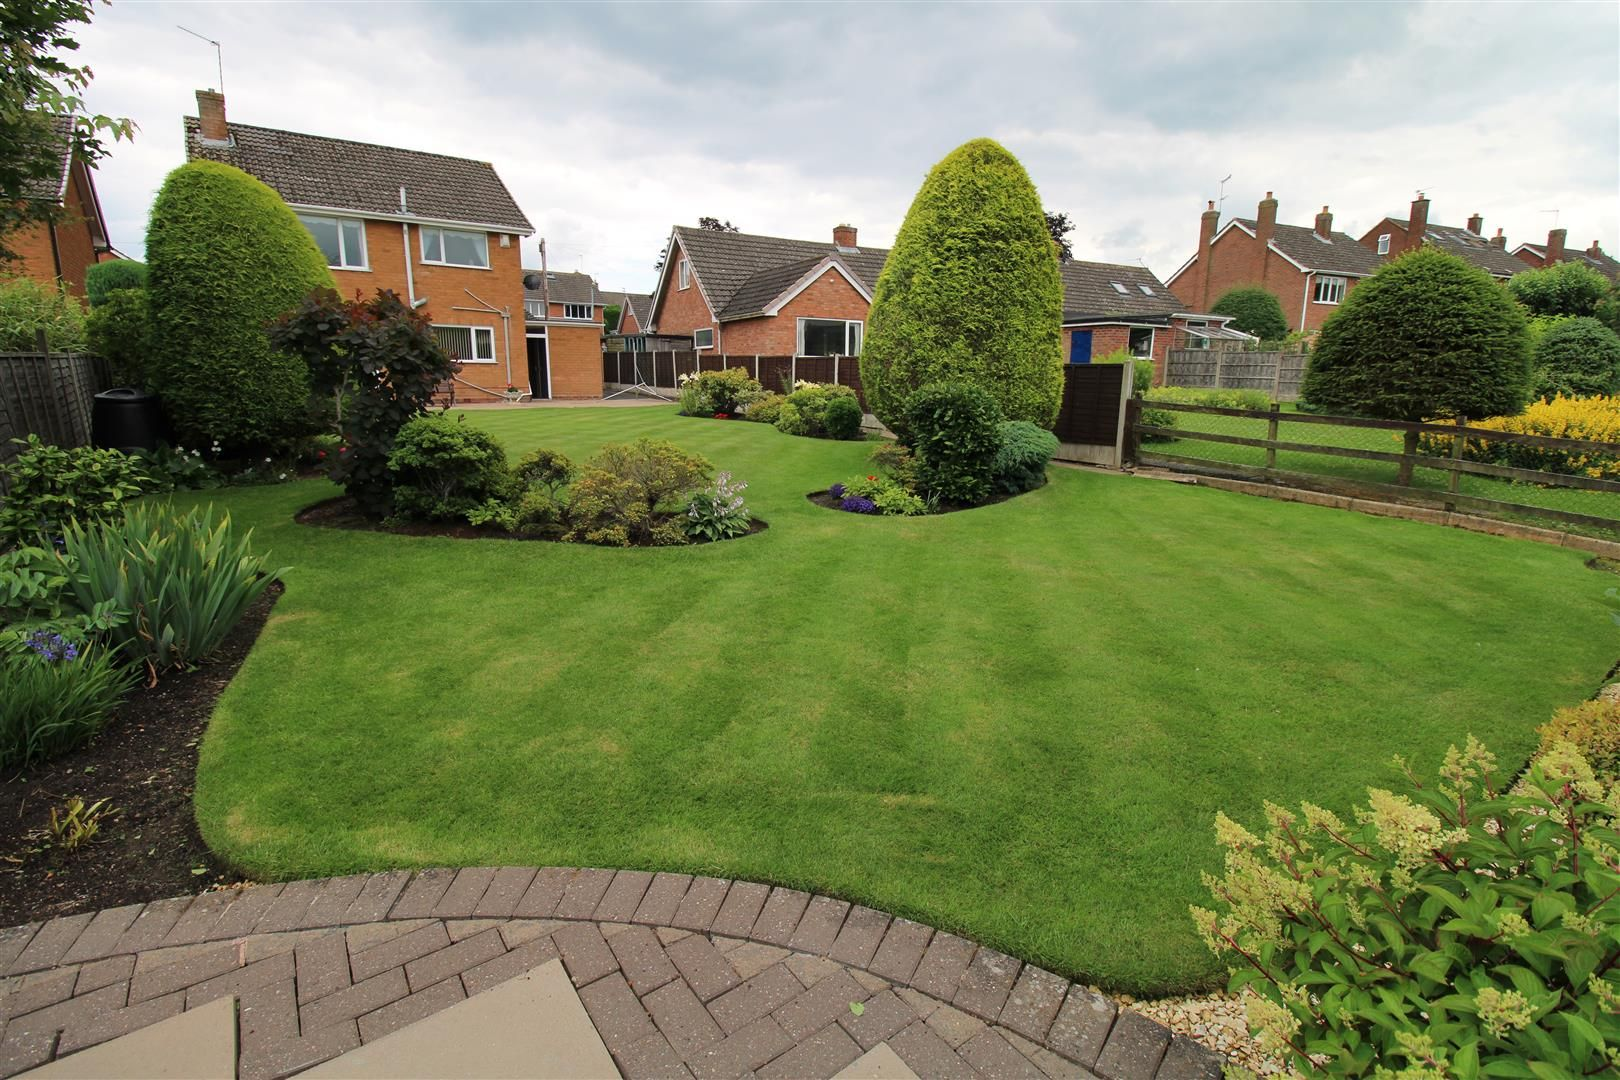 3 bed detached for sale in Pedmore 18